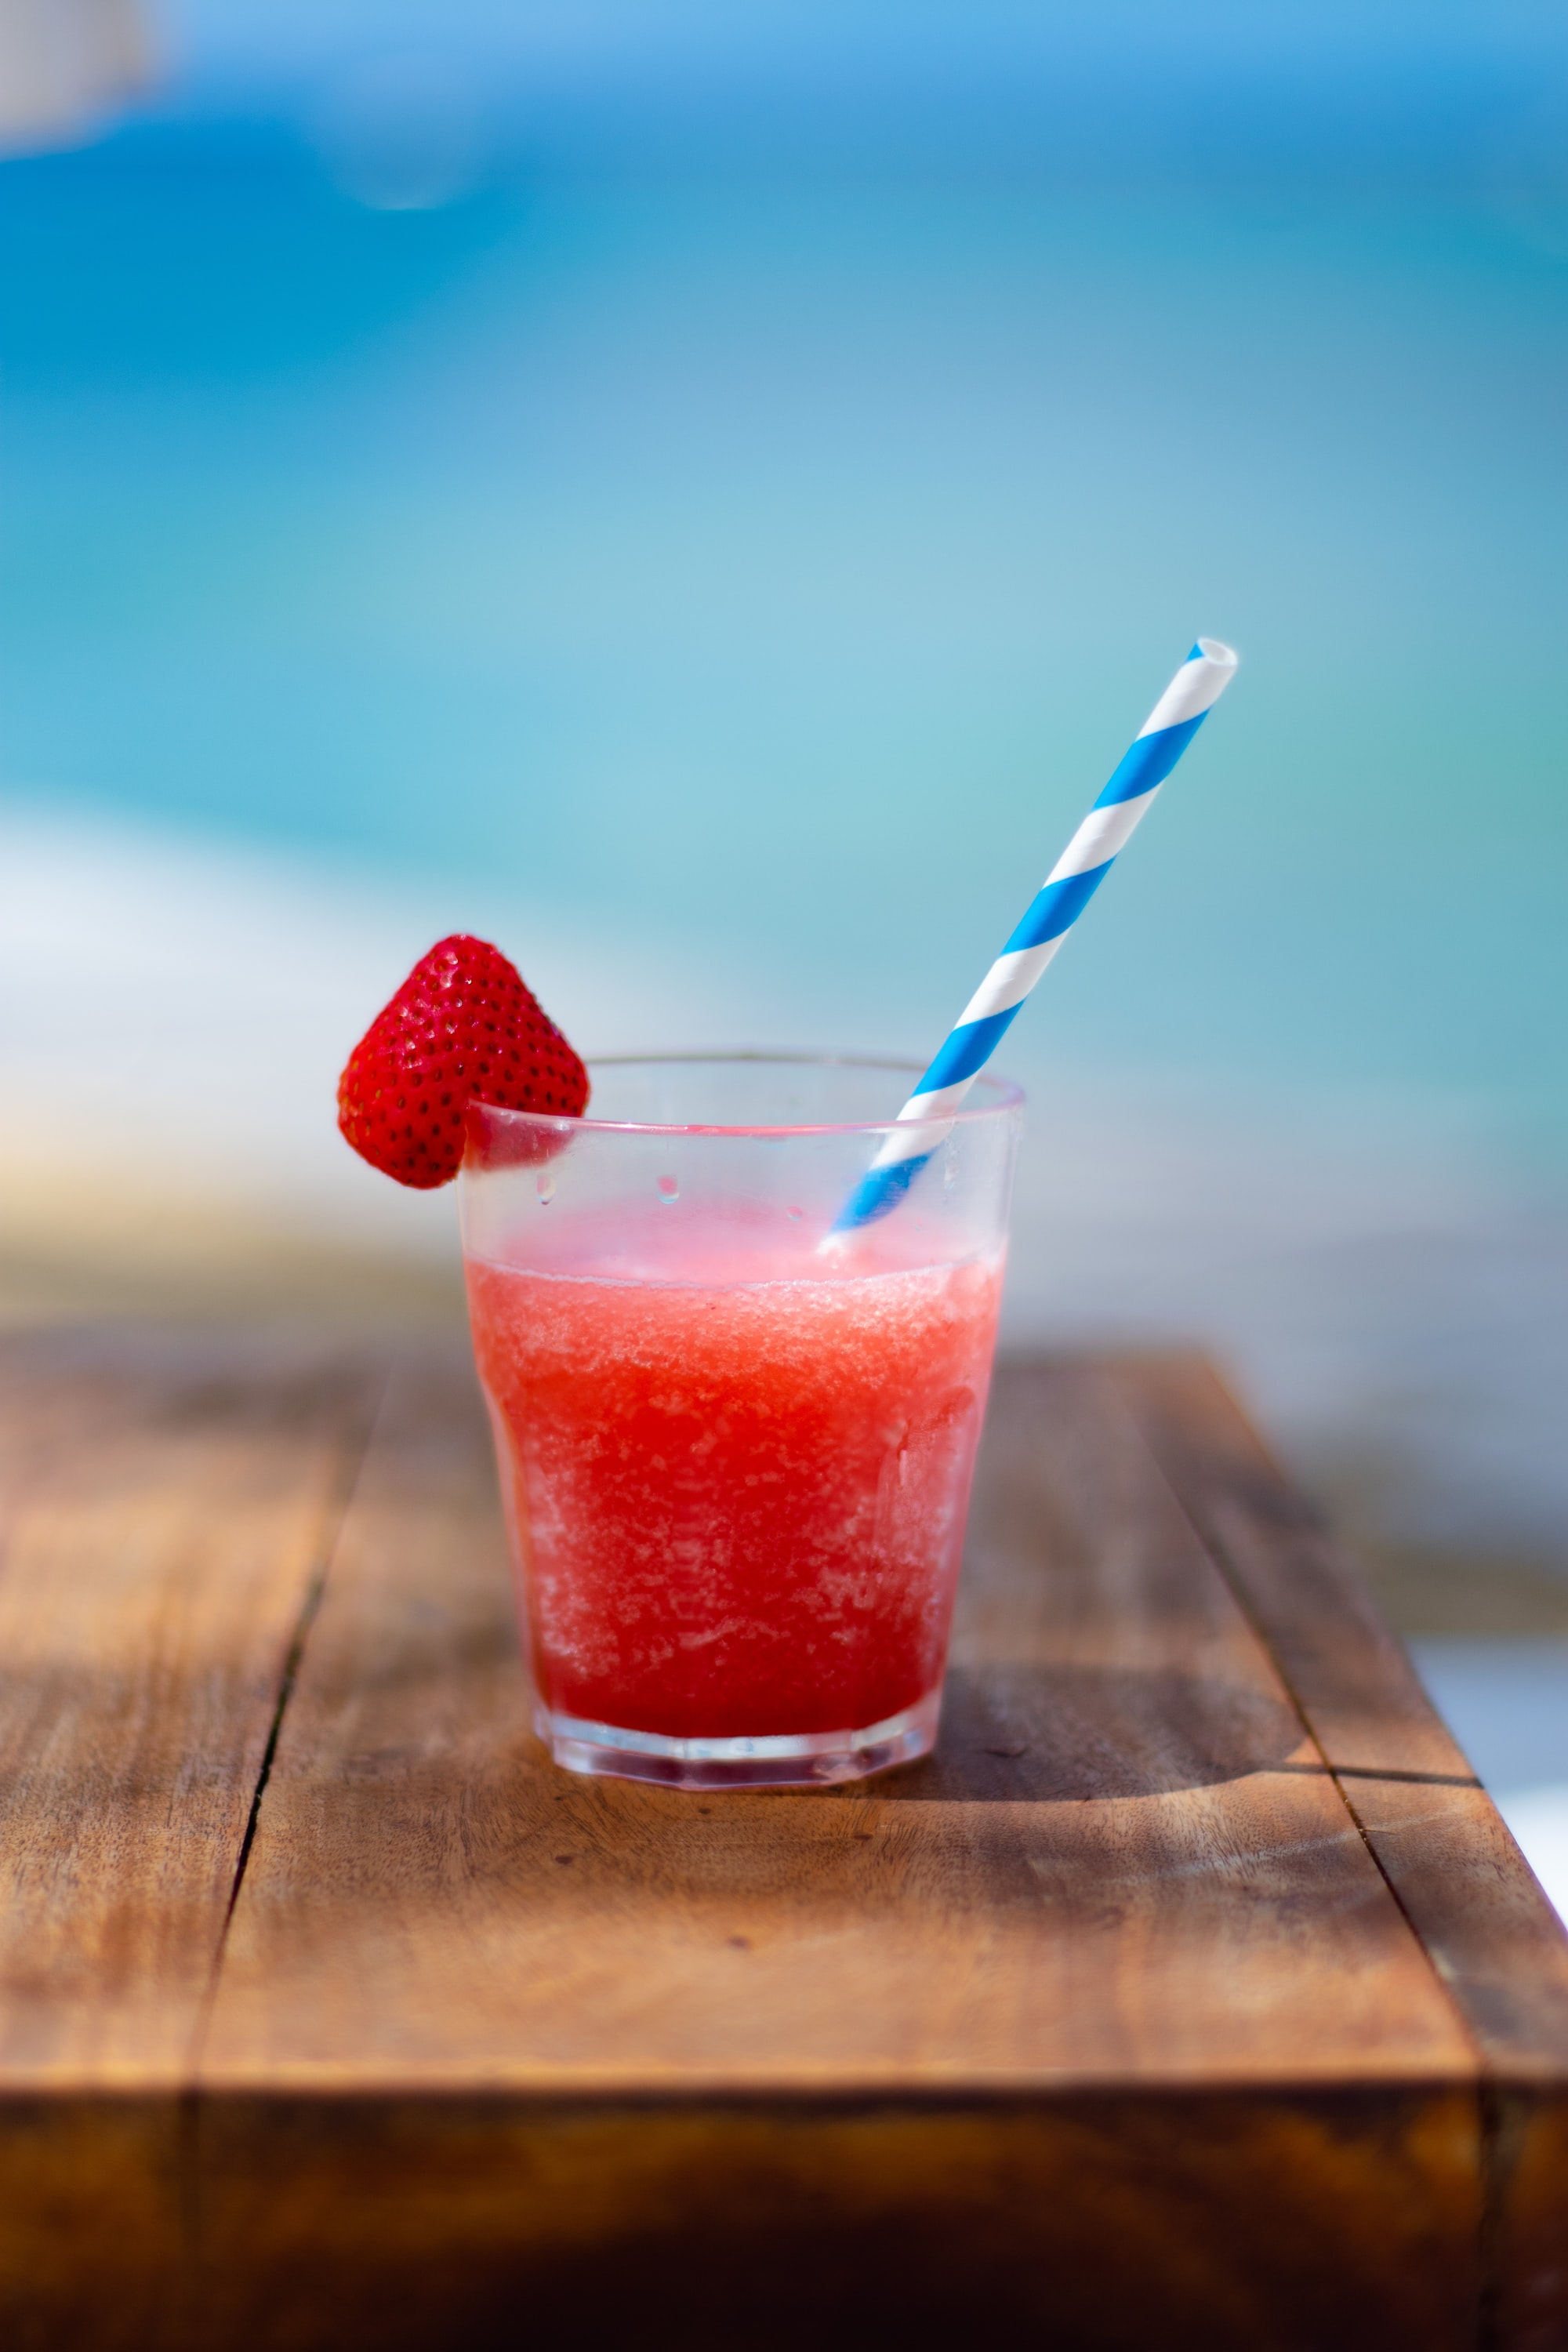 When the temperature is 93 degrees and you're sitting in the hot sun in Barbados, what better way to cool down then with a strawberry daiquiri? This is taken at Nikki Beach restaurant where there are breathtaking views of the sea all around. The beautiful blue sea creates a stunning background for this delicious drink.